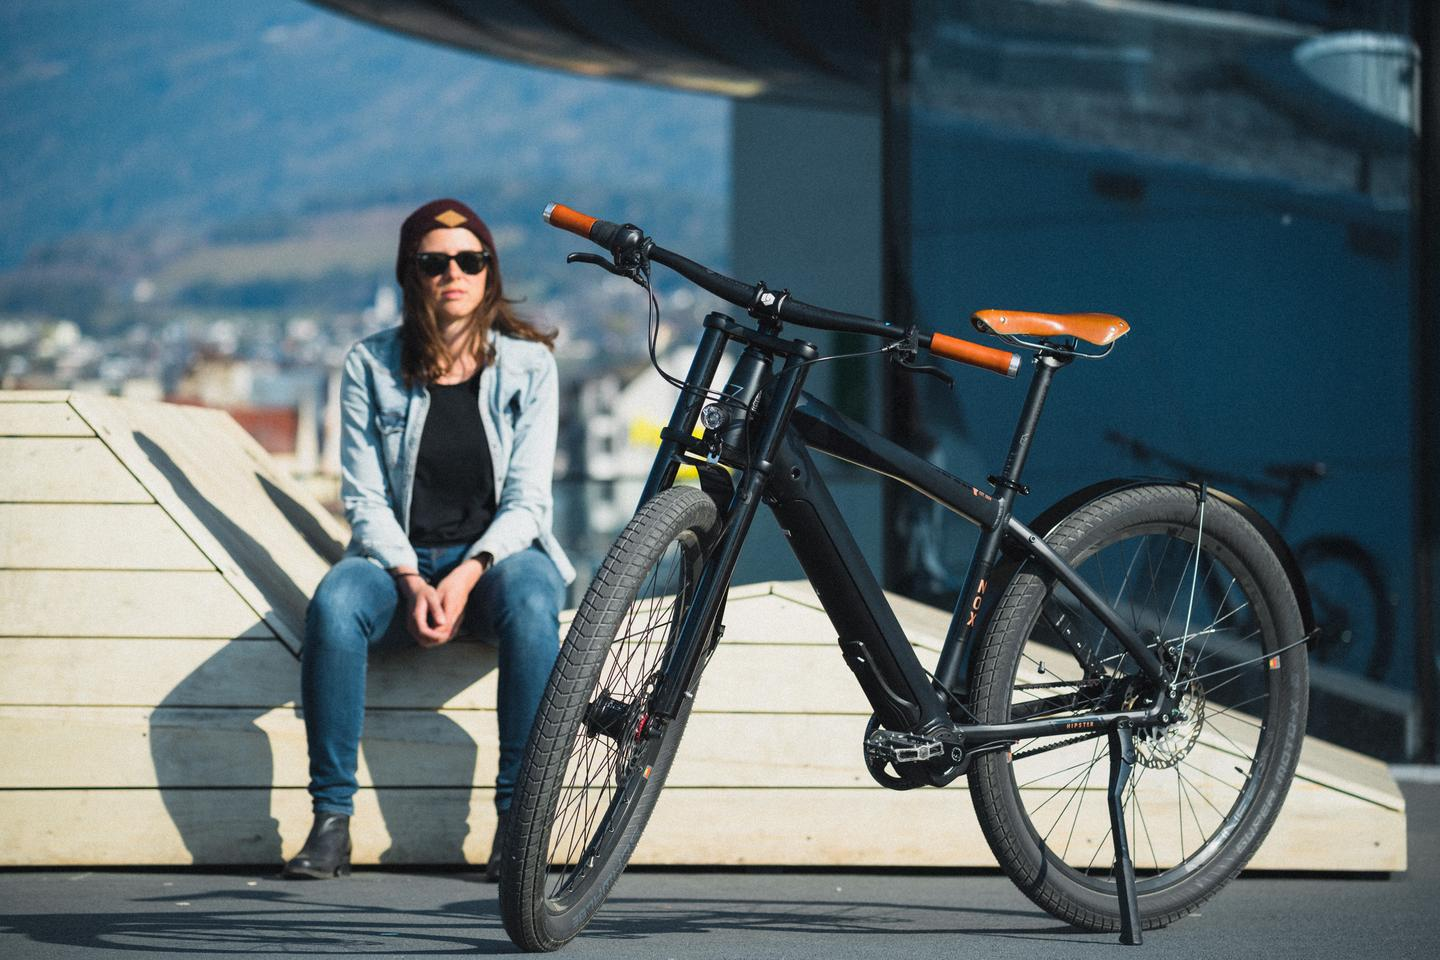 The new Nox Metropolis ebike looks to provide a smooth ride for everyday city commuting and leisurely adventures